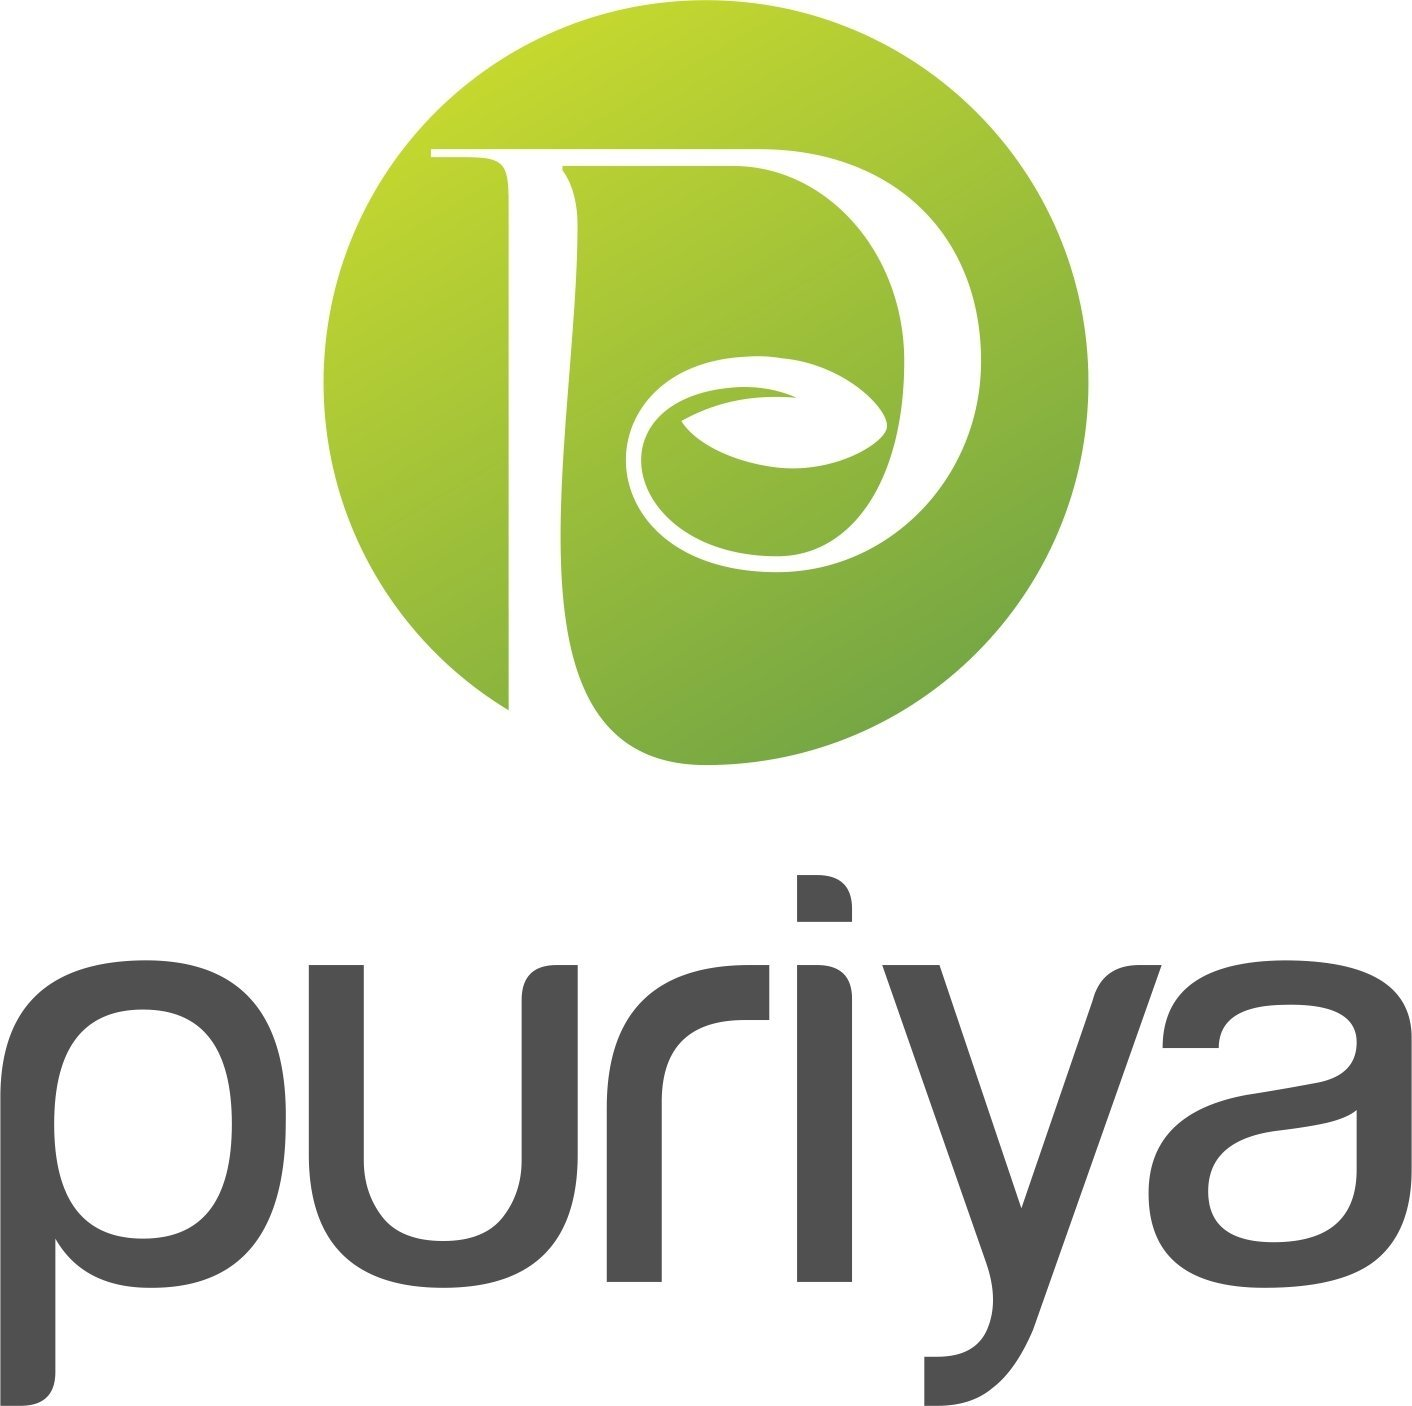 Puriya Sulfate Free Anti Dandruff Shampoo with Tea Tree Oil. 16 oz. Moisturizing and Gentle for Daily Use. Combats itchy, Flaky, Dry Scalp. Ideal for Psoriasis, Seborrheic Dermatitis, scalp eczema by Puriya (Image #8)